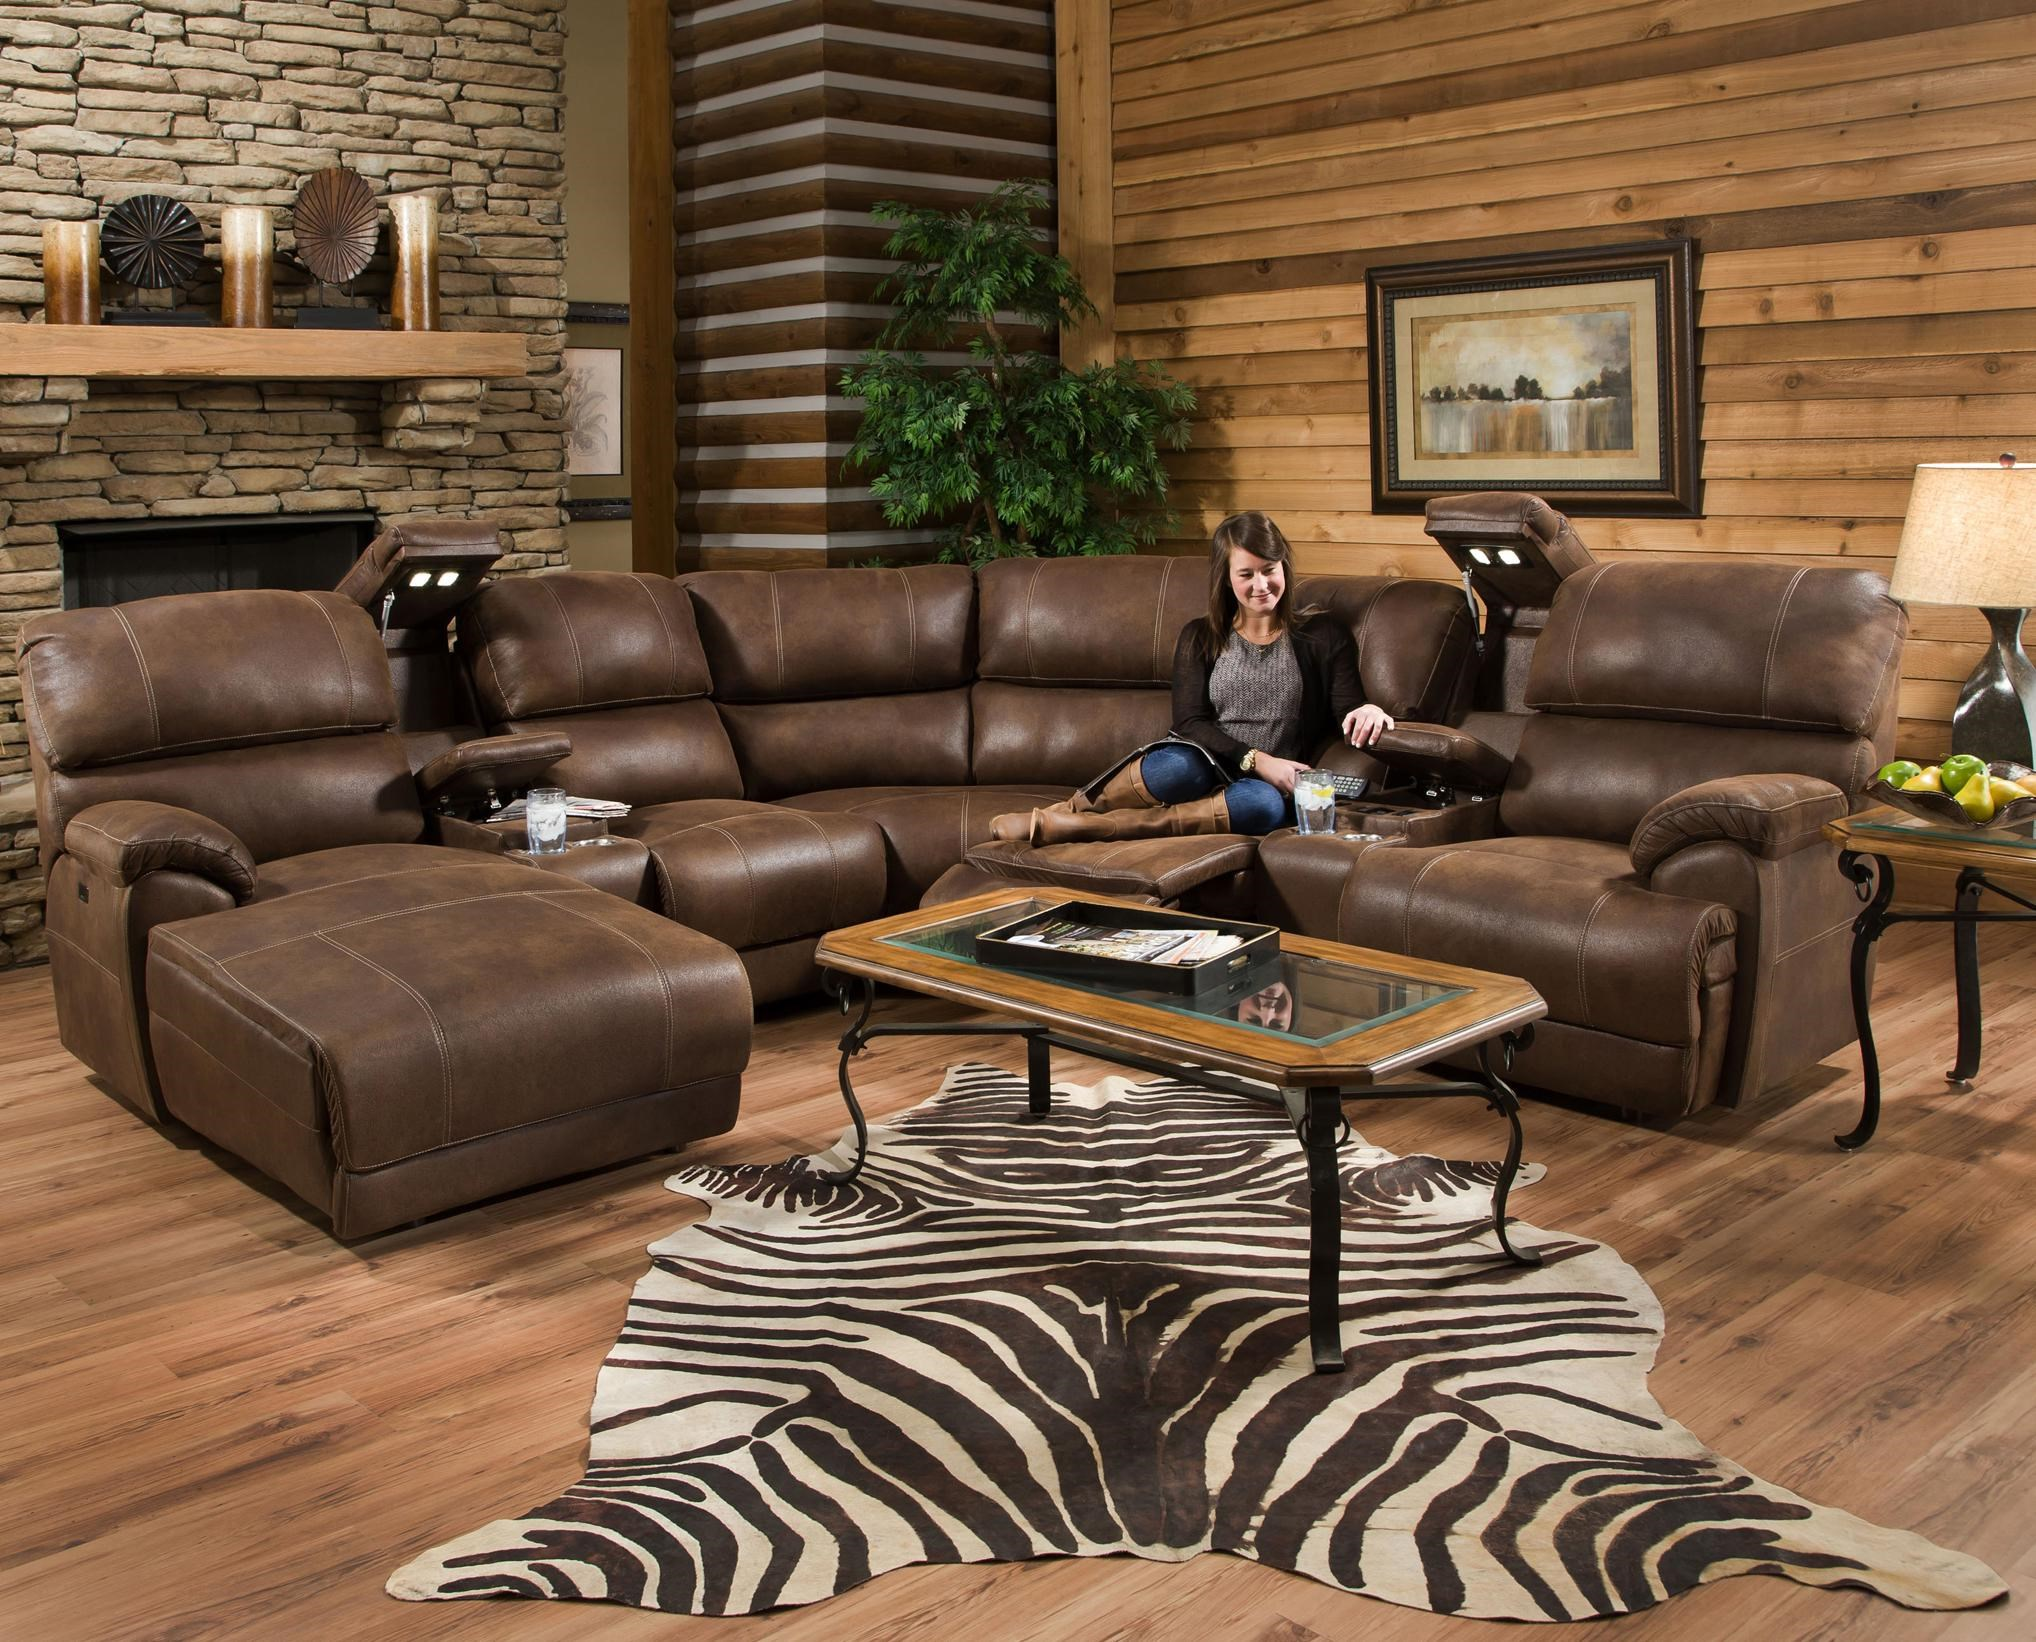 Franklin Empire Reclining Sectional Sofa with Right Side Chaise  sc 1 st  Wilcox Furniture : franklin sectional sofa - Sectionals, Sofas & Couches